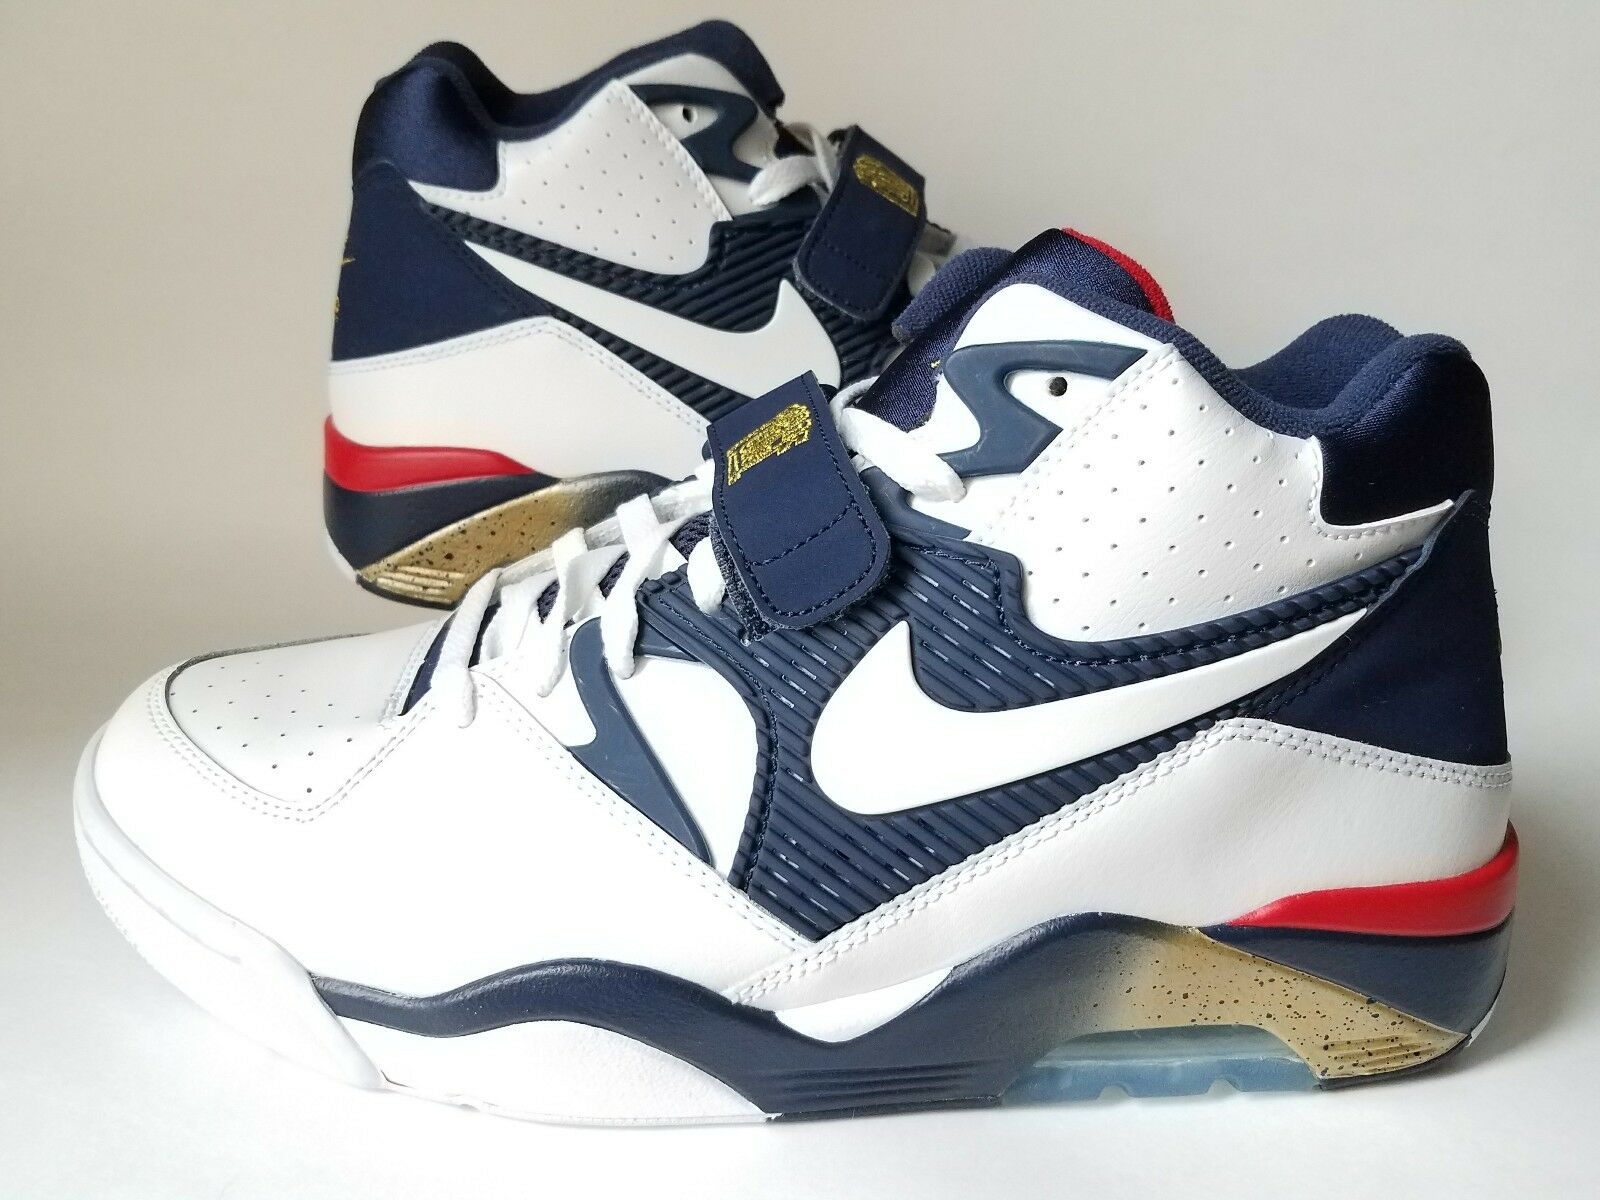 NEW NIKE AIR FORCE 180 Olympics MENS SZ 11.5 White/Blue/Gold 310095-100 Barkley